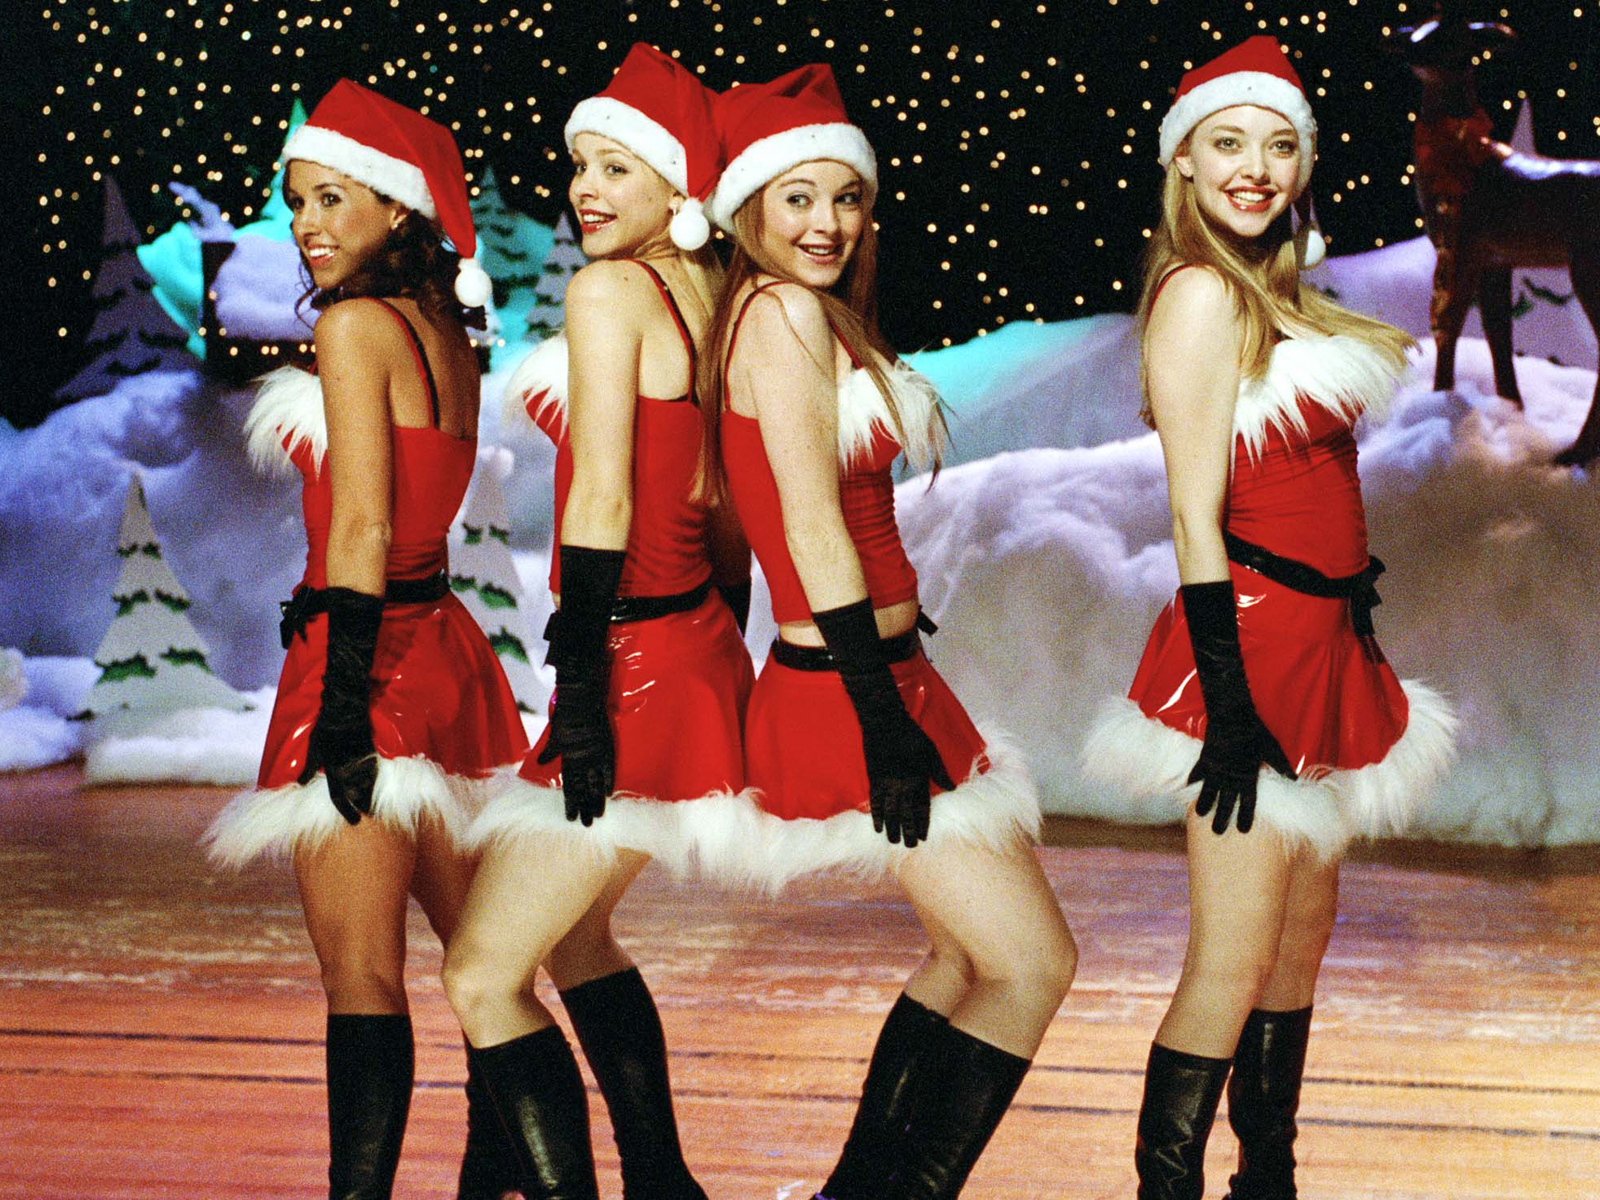 Merry Christmas And Happy Holidays Nsync - 2018 images & pictures ...